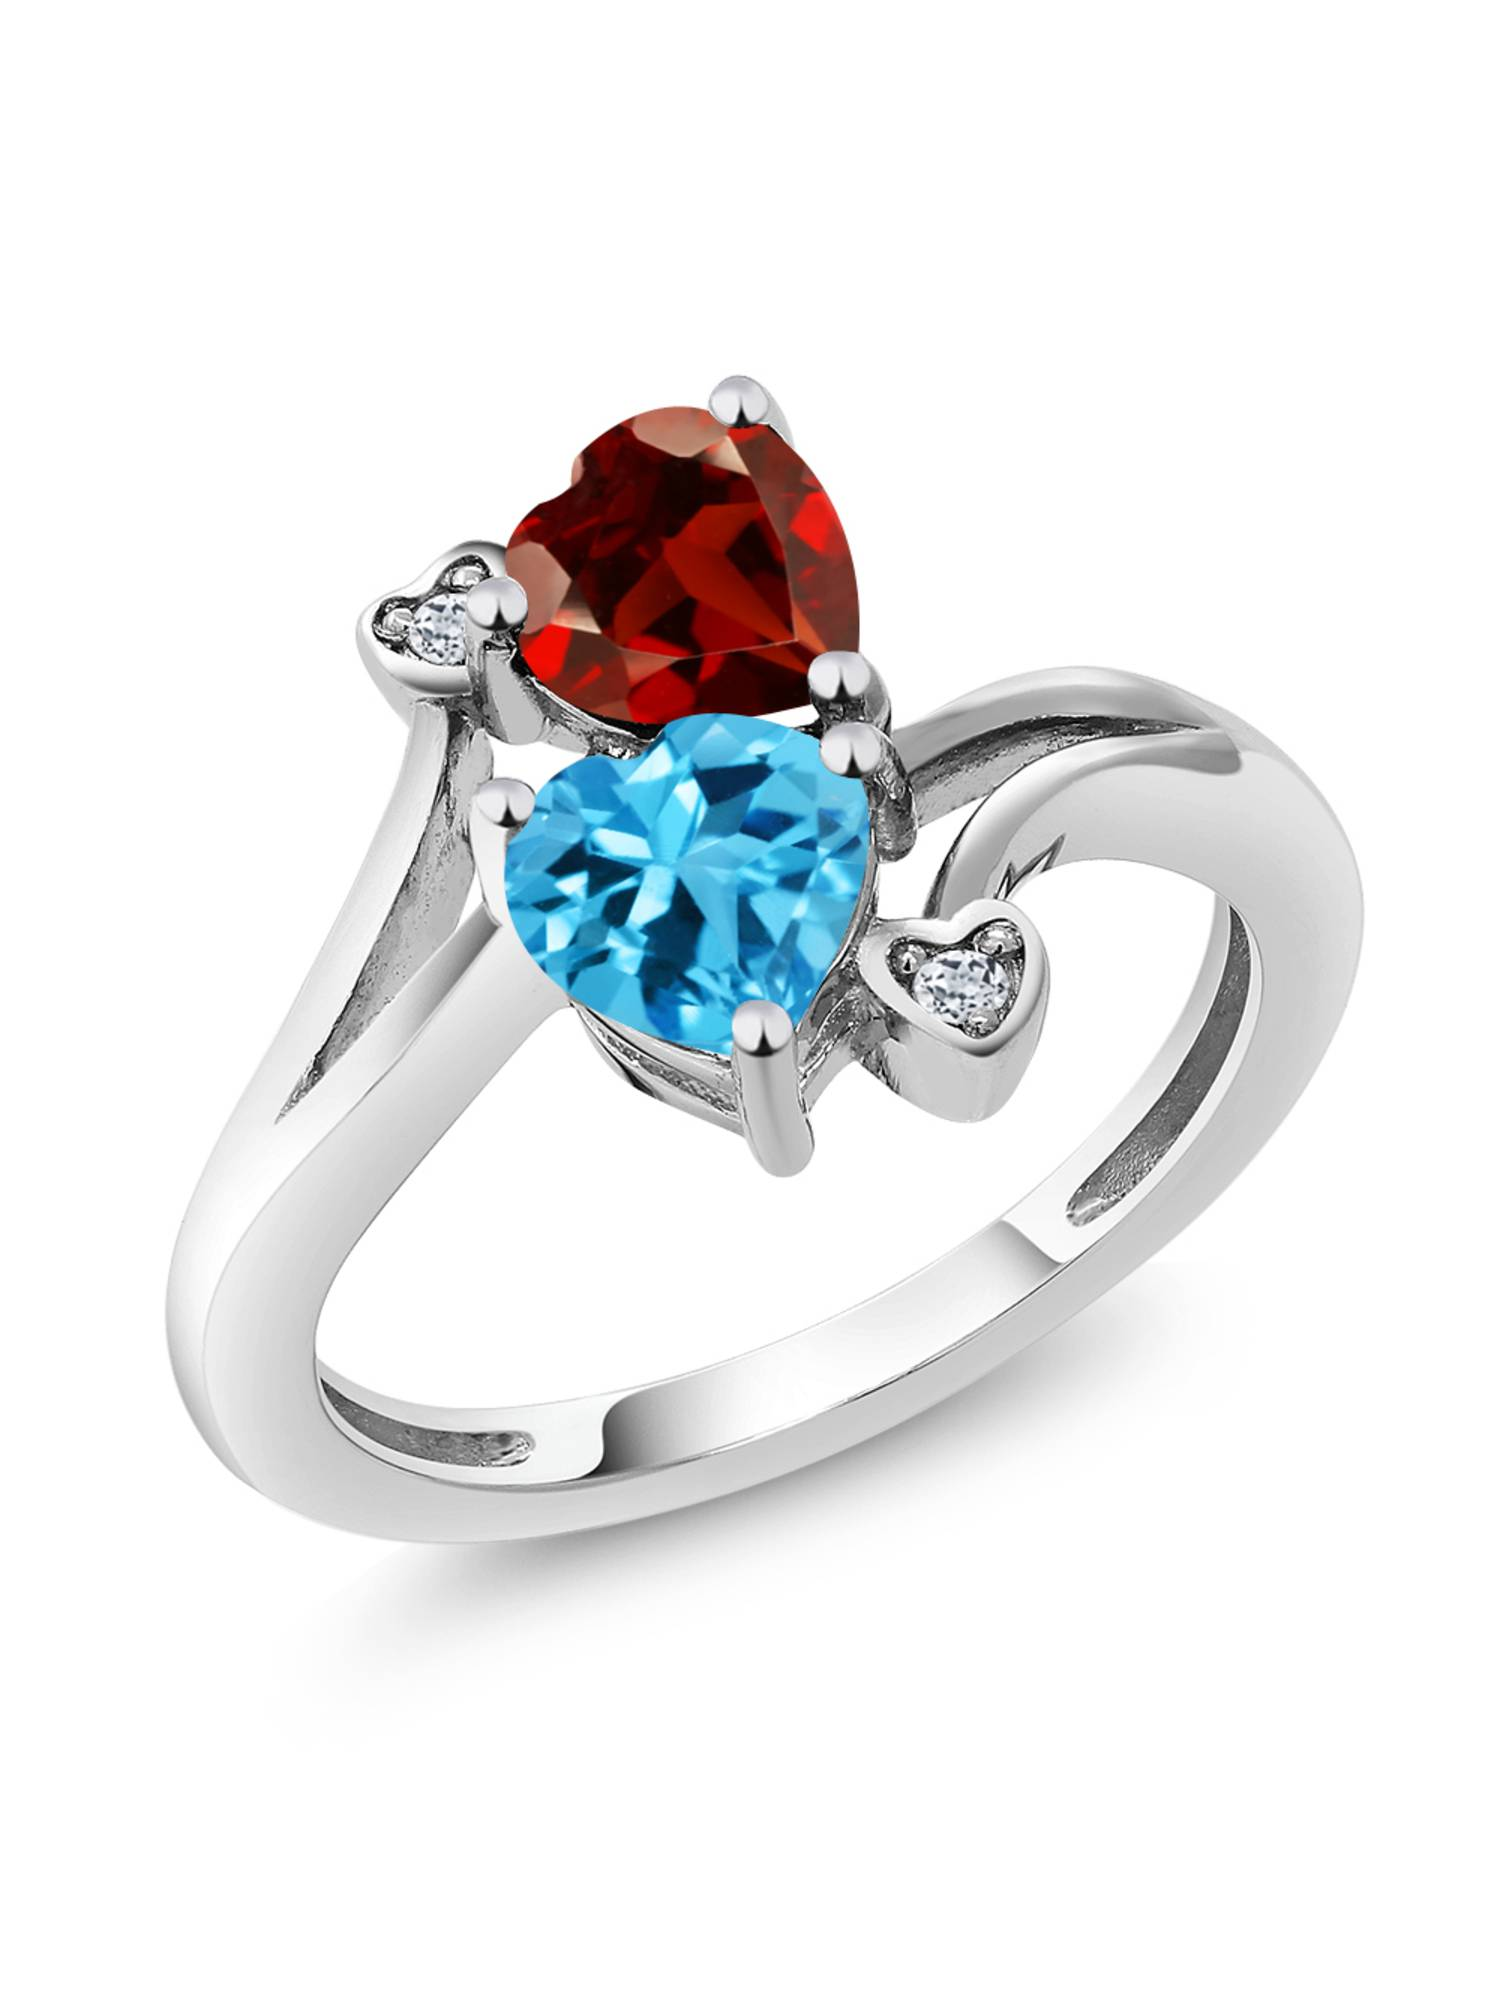 1.91 Ct Heart Shape Garnet and Swiss Topaz 925 Sterling Silver Women's Ring